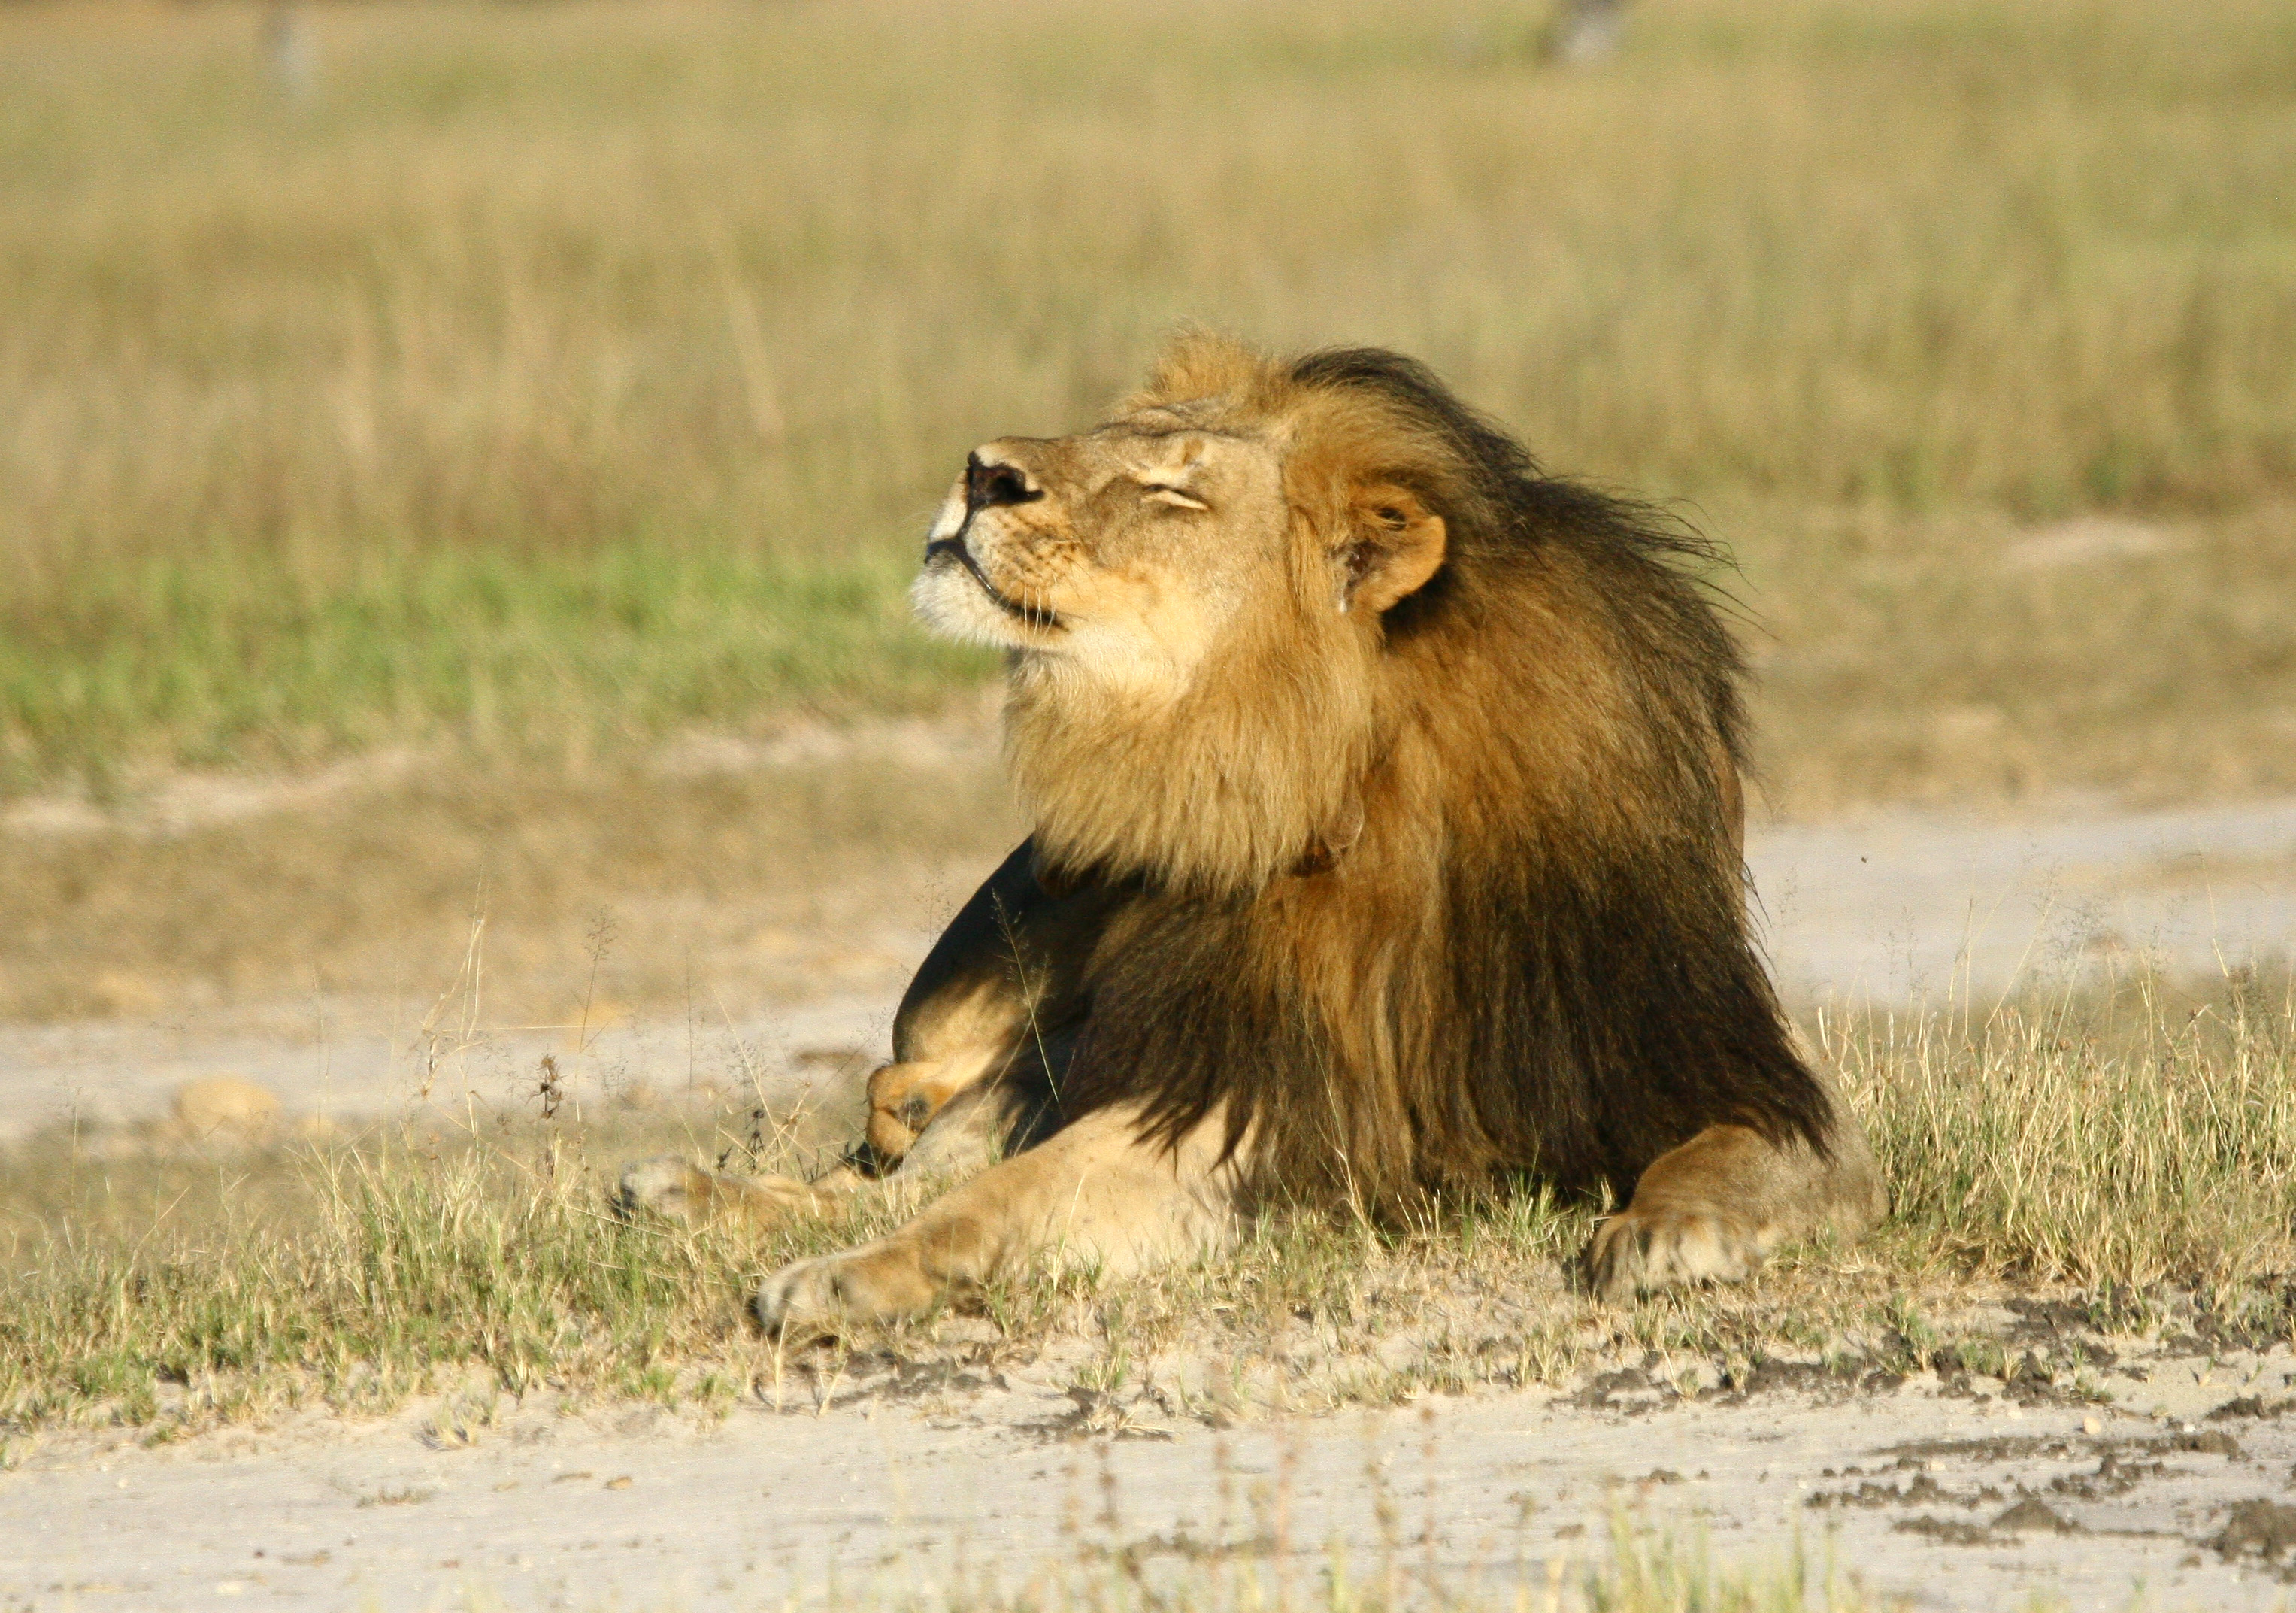 Cecil the lion's son Xanda also shot dead in Zimbabwe